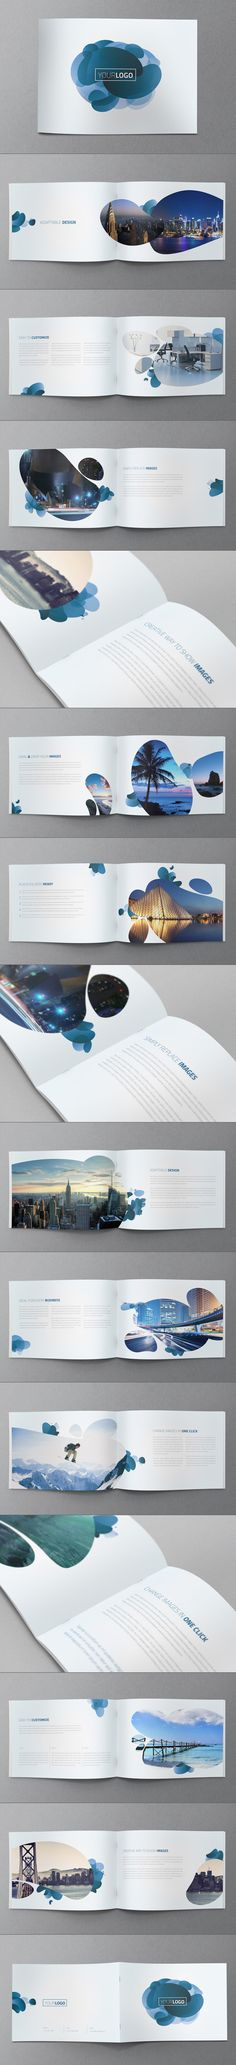 Abstract Brochure Design | Designer.